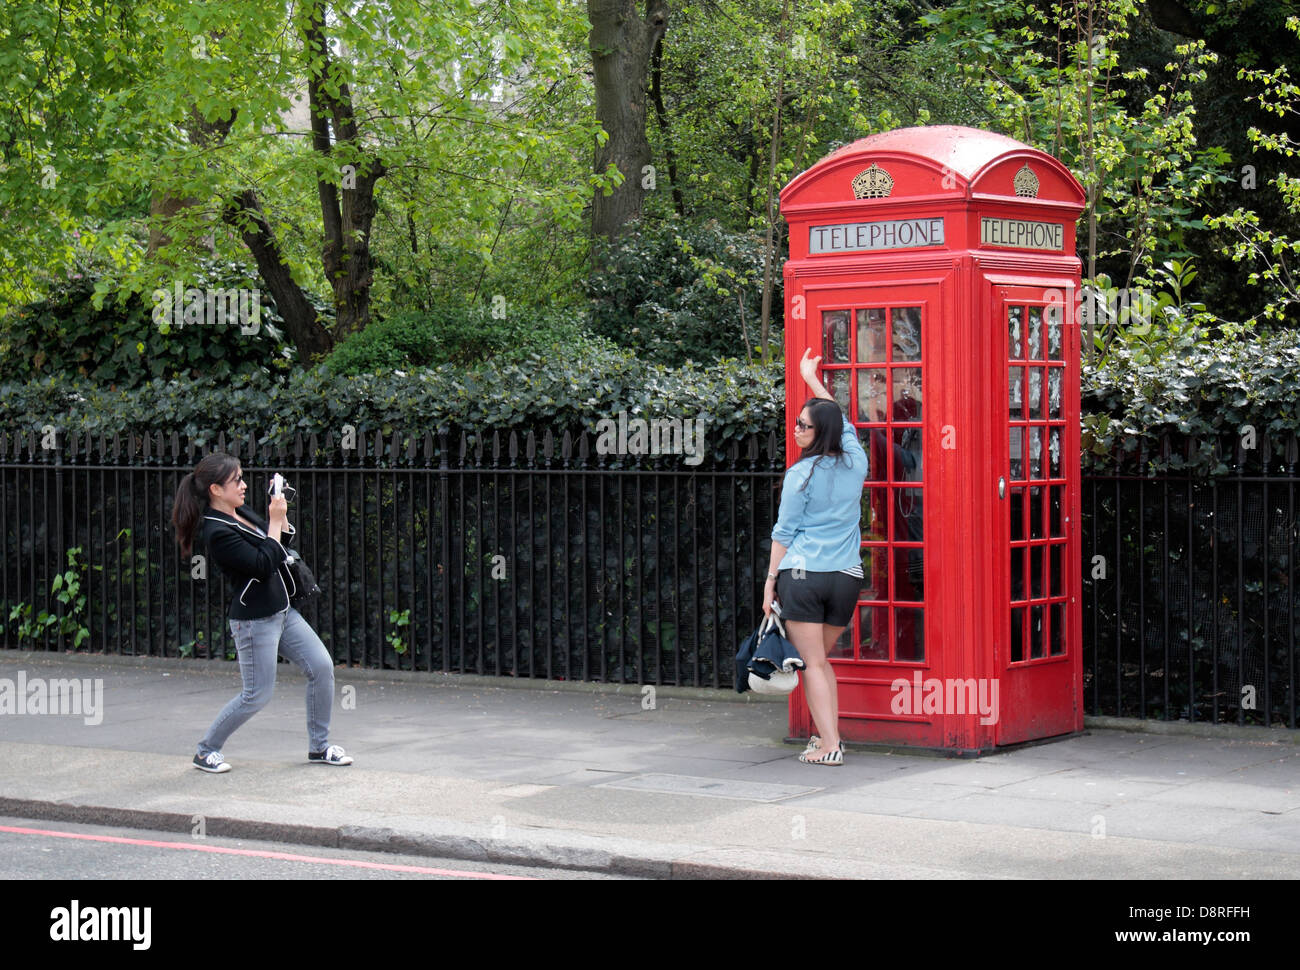 A tourist poses for her friend in front of an iconic symbol of Britain, a red telephone box in London, UK. - Stock Image